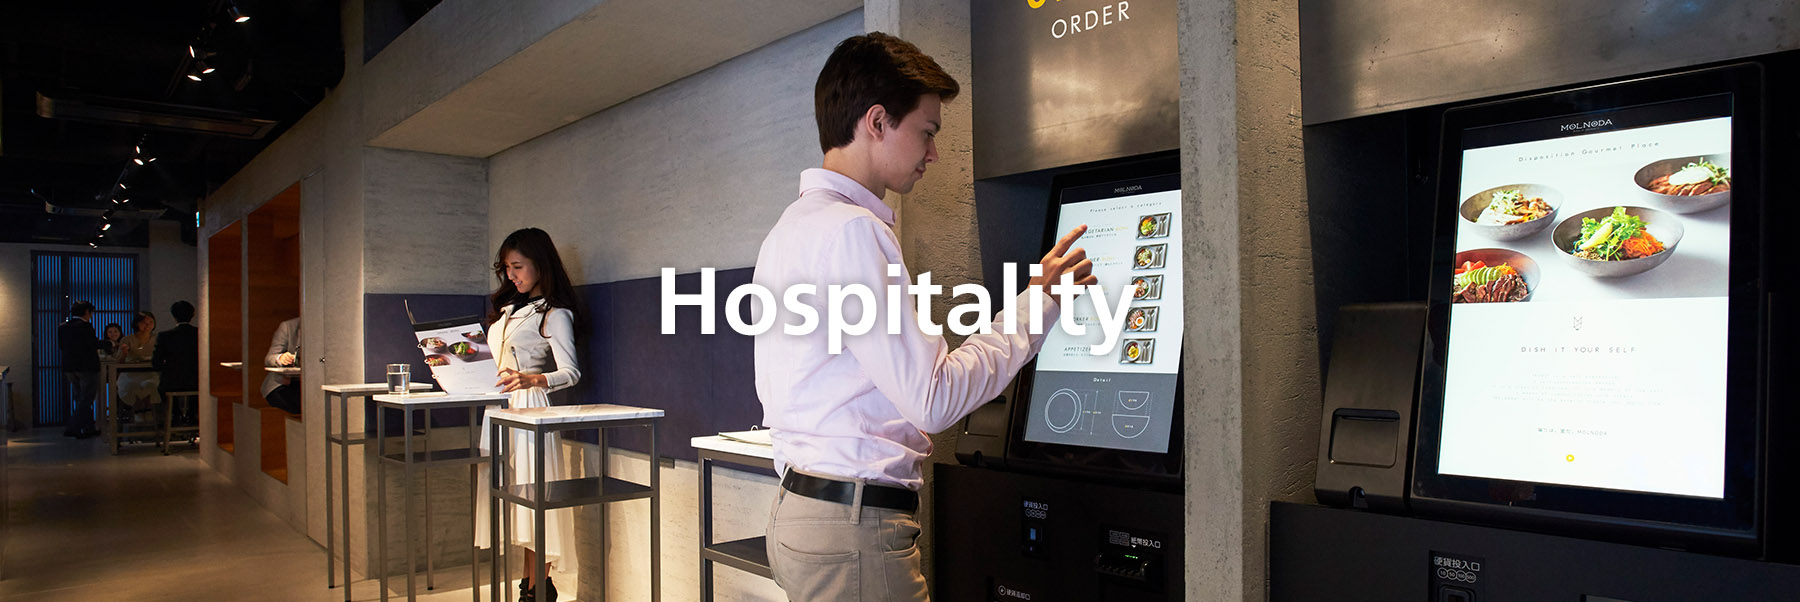 DIGI provides innovative solutions that streamline operations and increase  profitability in the hospitality industry.